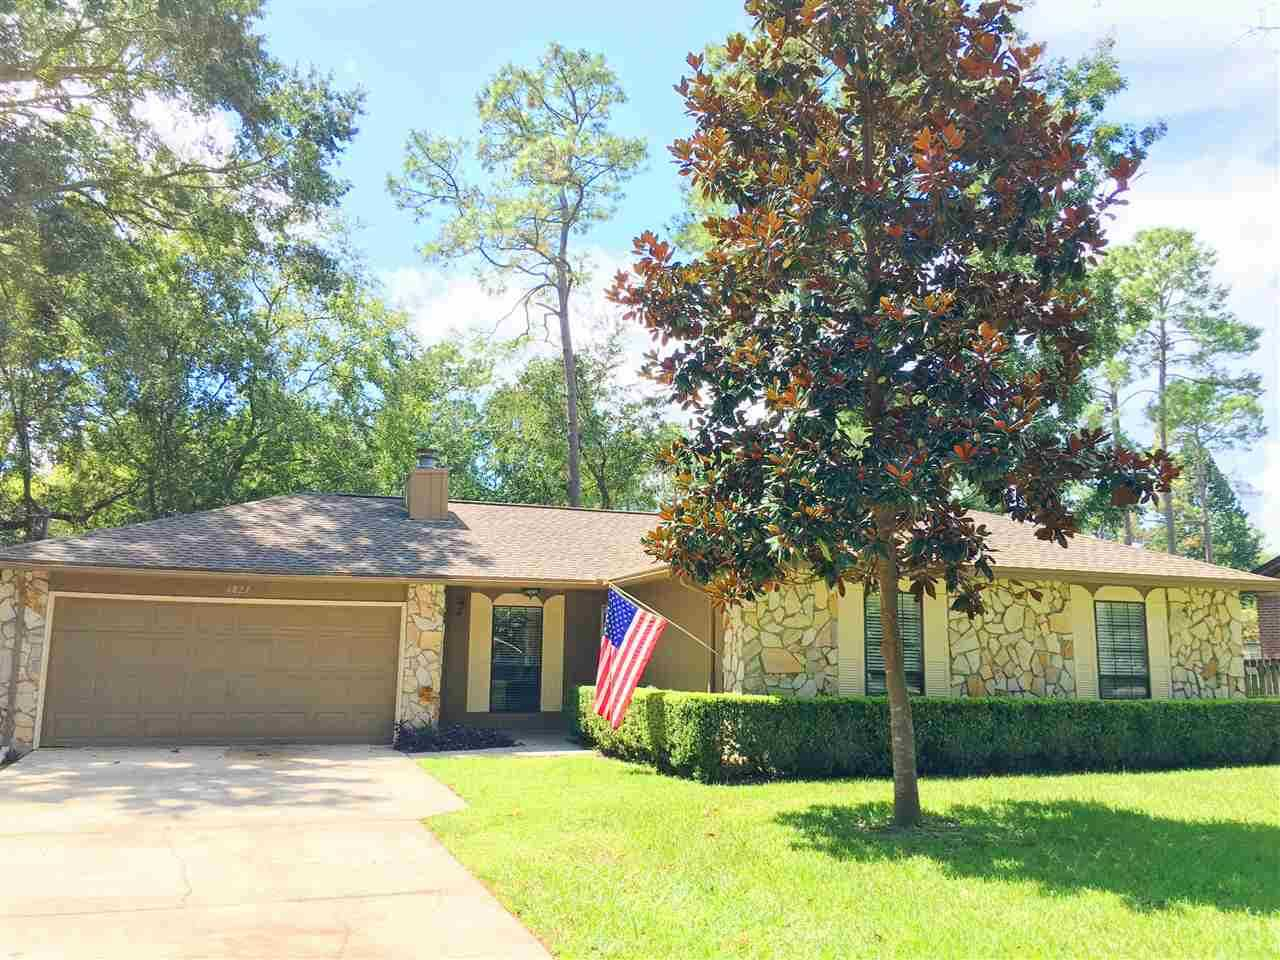 6823 Hill Gail Trail Tallahassee, FL 32309 in Killearn Acres Photo 1